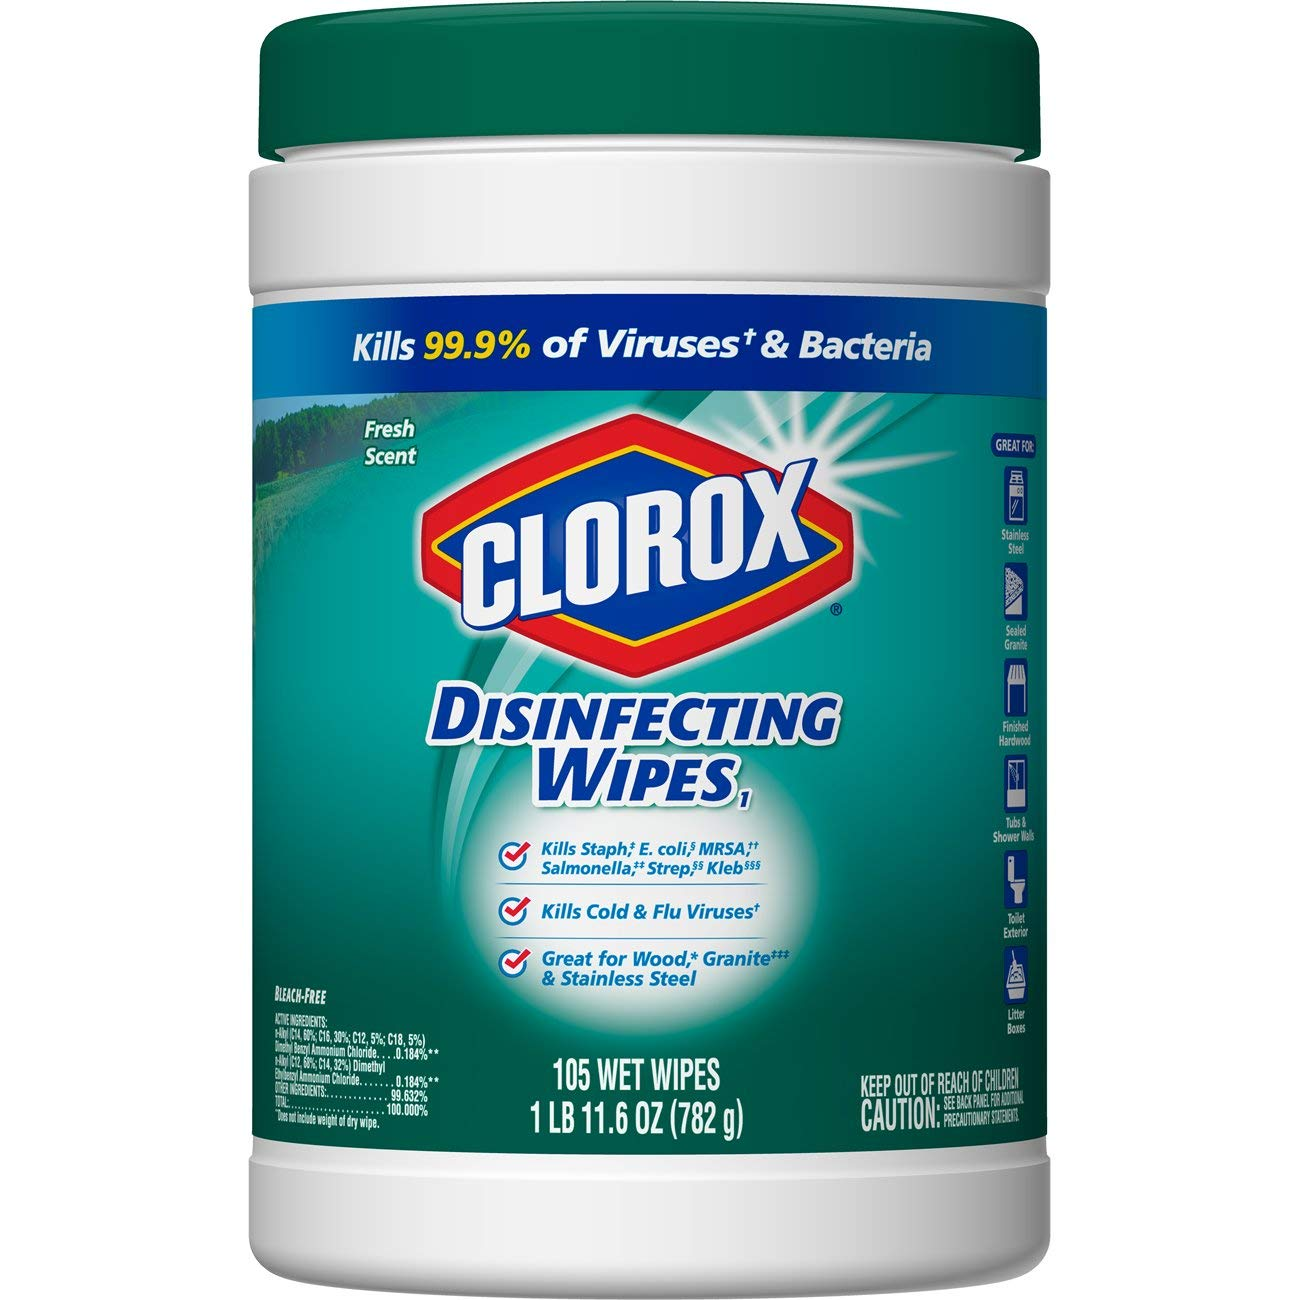 Clorox Disinfecting Wipes, Bleach Free Cleaning Wipes - Fresh Scent, 105 Count Each (